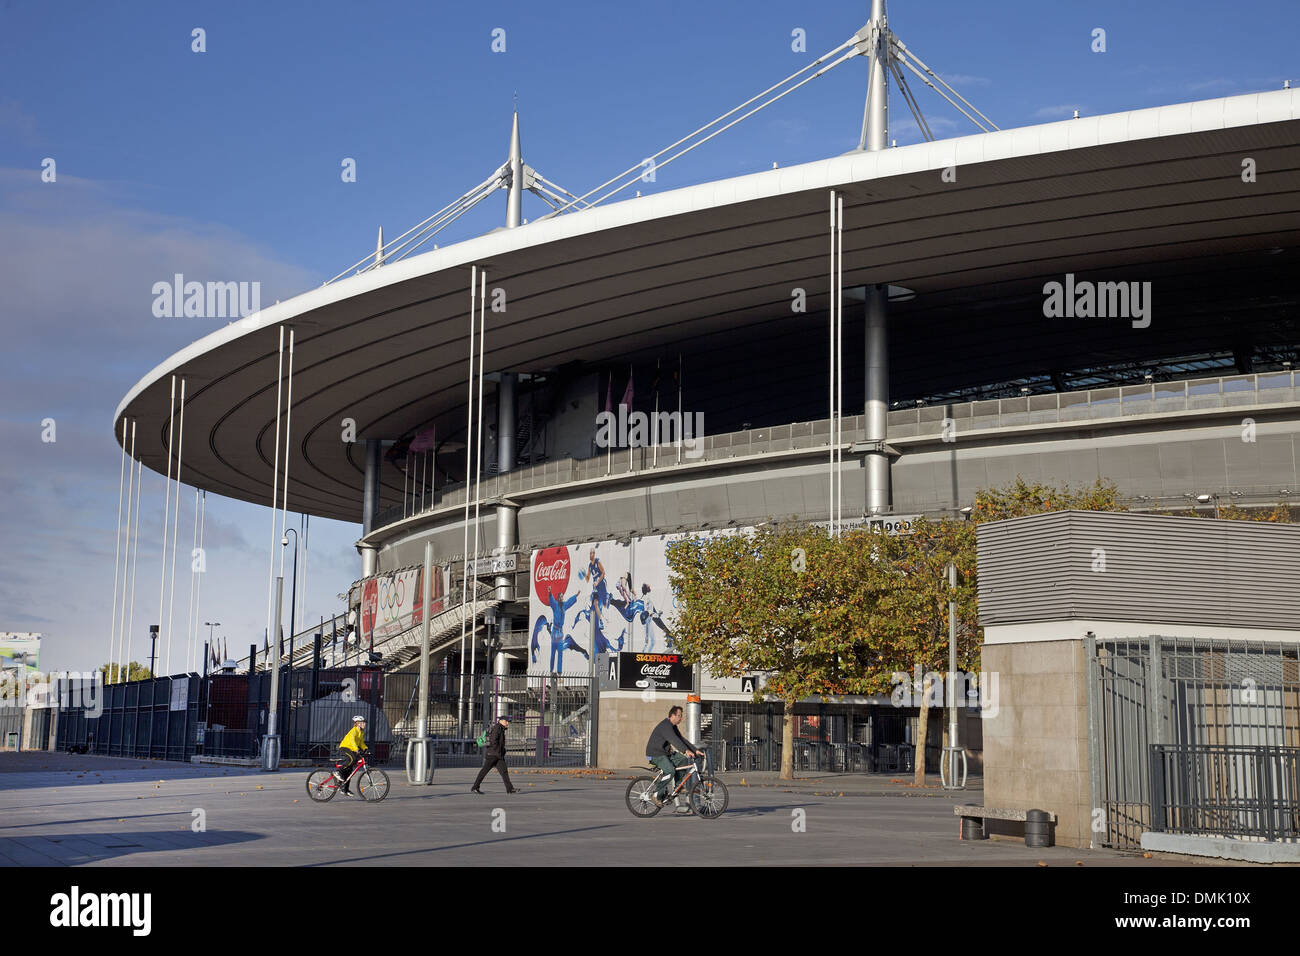 STADE DE FRANCE, THE BIGGEST STADIUM IN FRANCE, BUILT BETWEEN 1995 AND 1998 TO MEET THE NEEDS OF THE SOCCER WORLD Stock Photo